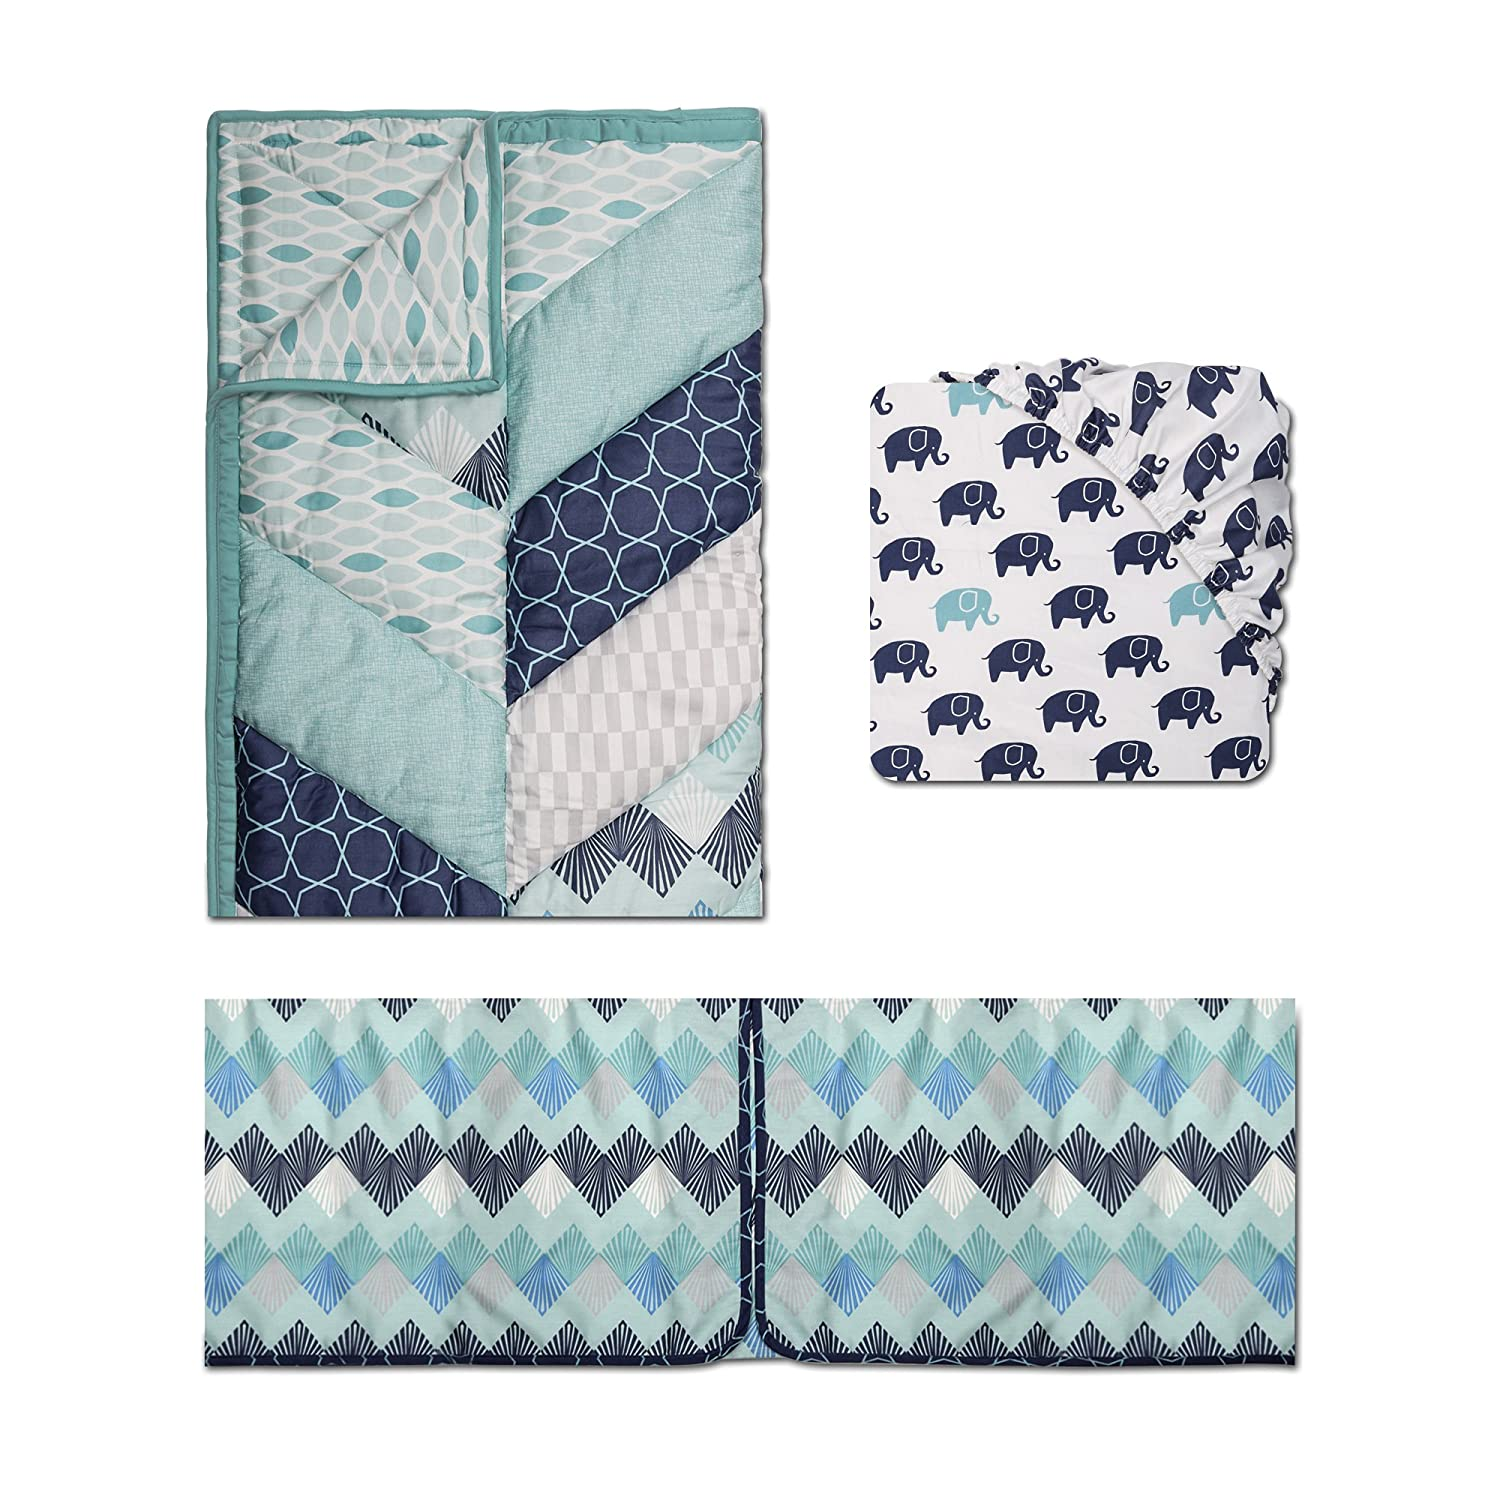 The Peanutshell Mosaic 3 Piece Crib Bedding Set, Blue, Grey, Aqua, Medium Farallon Brands BSPS: BSPS-MSC